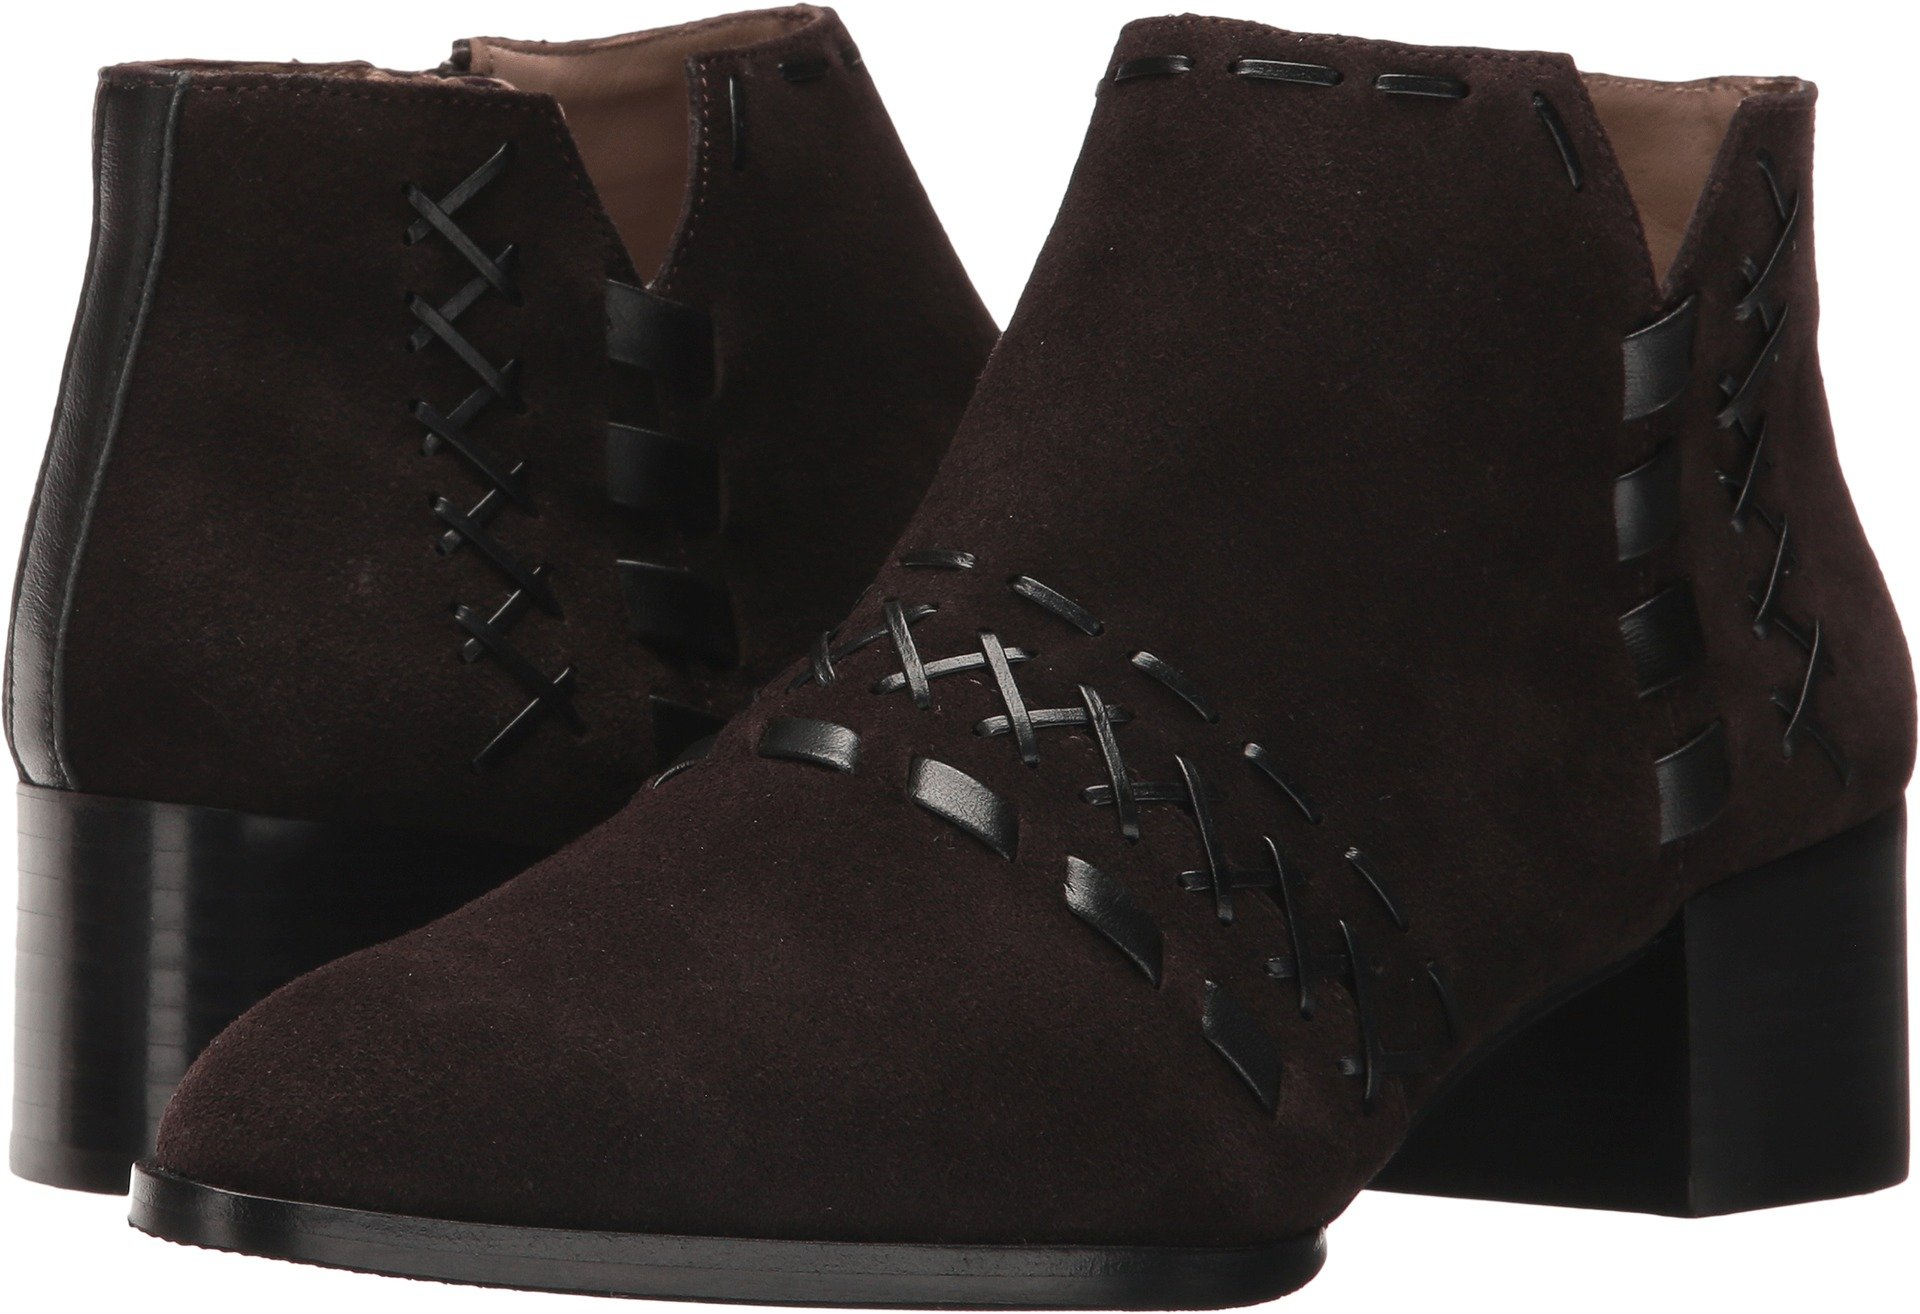 Donald J Pliner Women's Bowery Ankle Boot, Cocoa, 6.5 M US